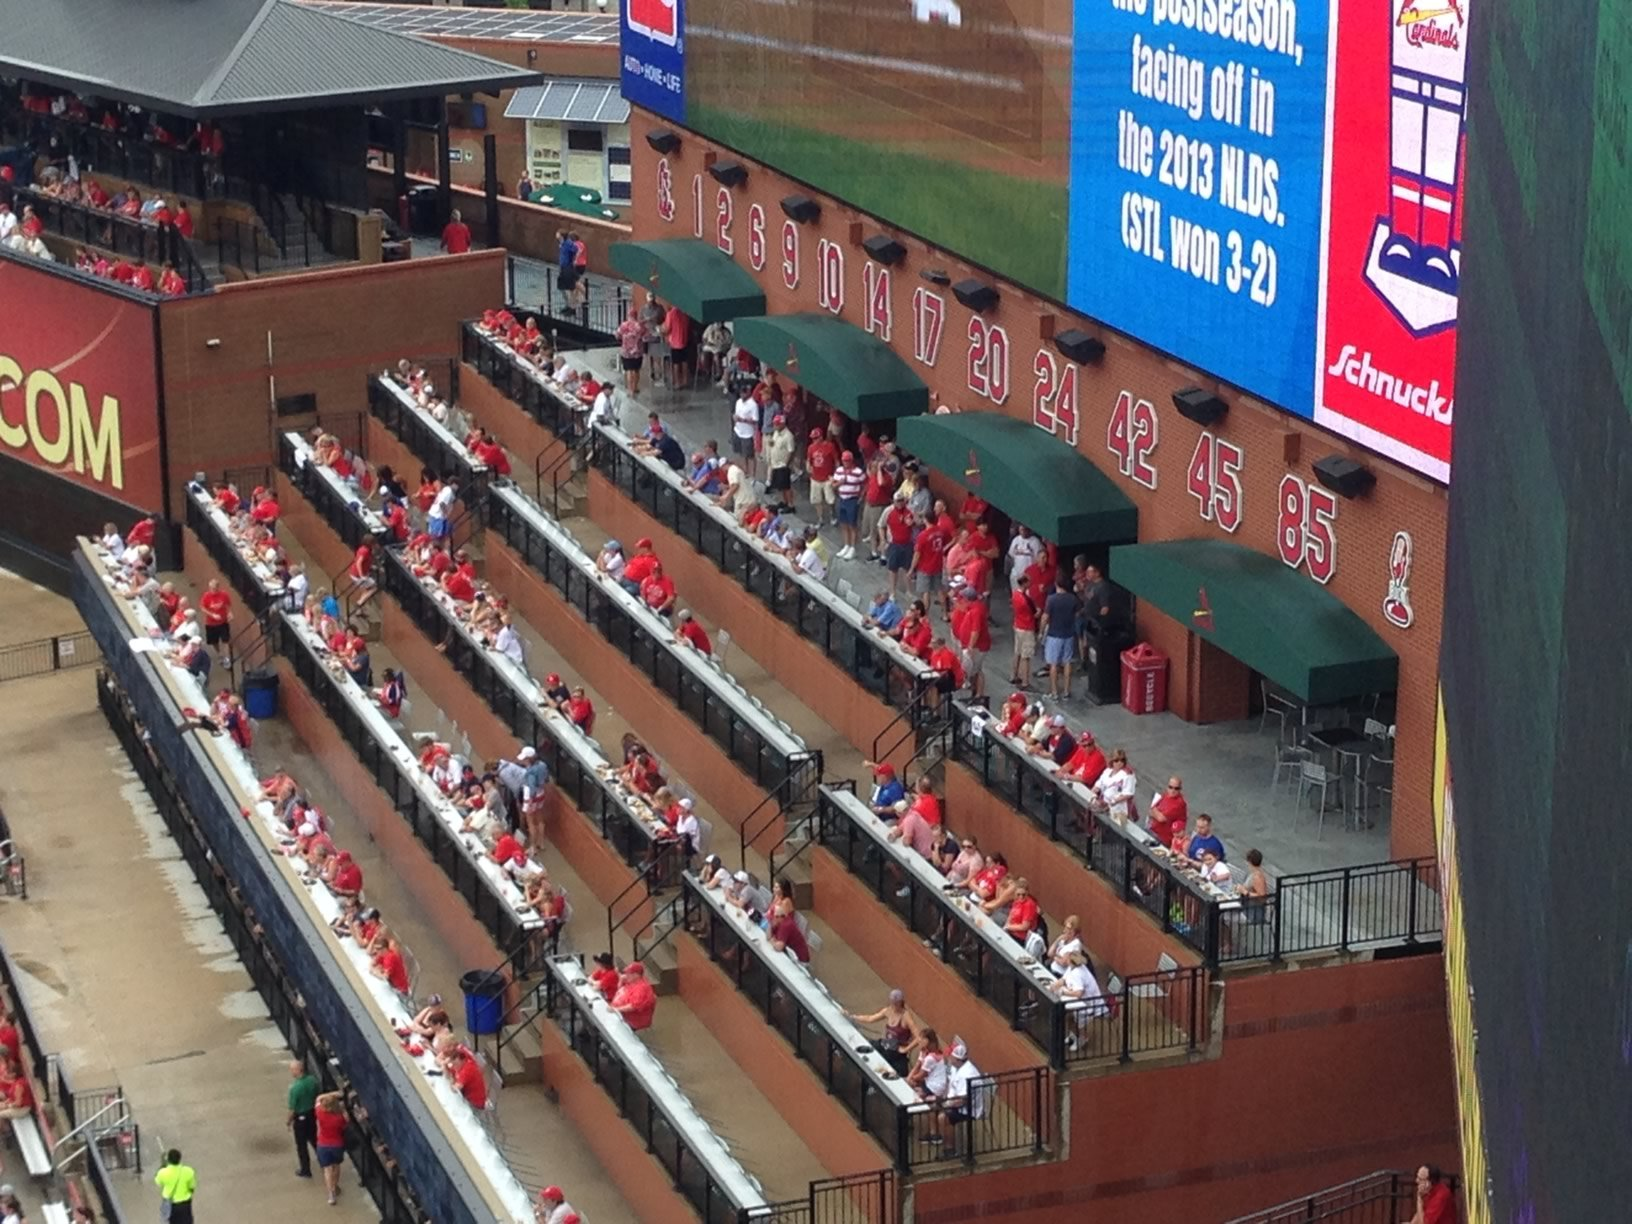 busch stadium coca cola scoreboard patio. Black Bedroom Furniture Sets. Home Design Ideas